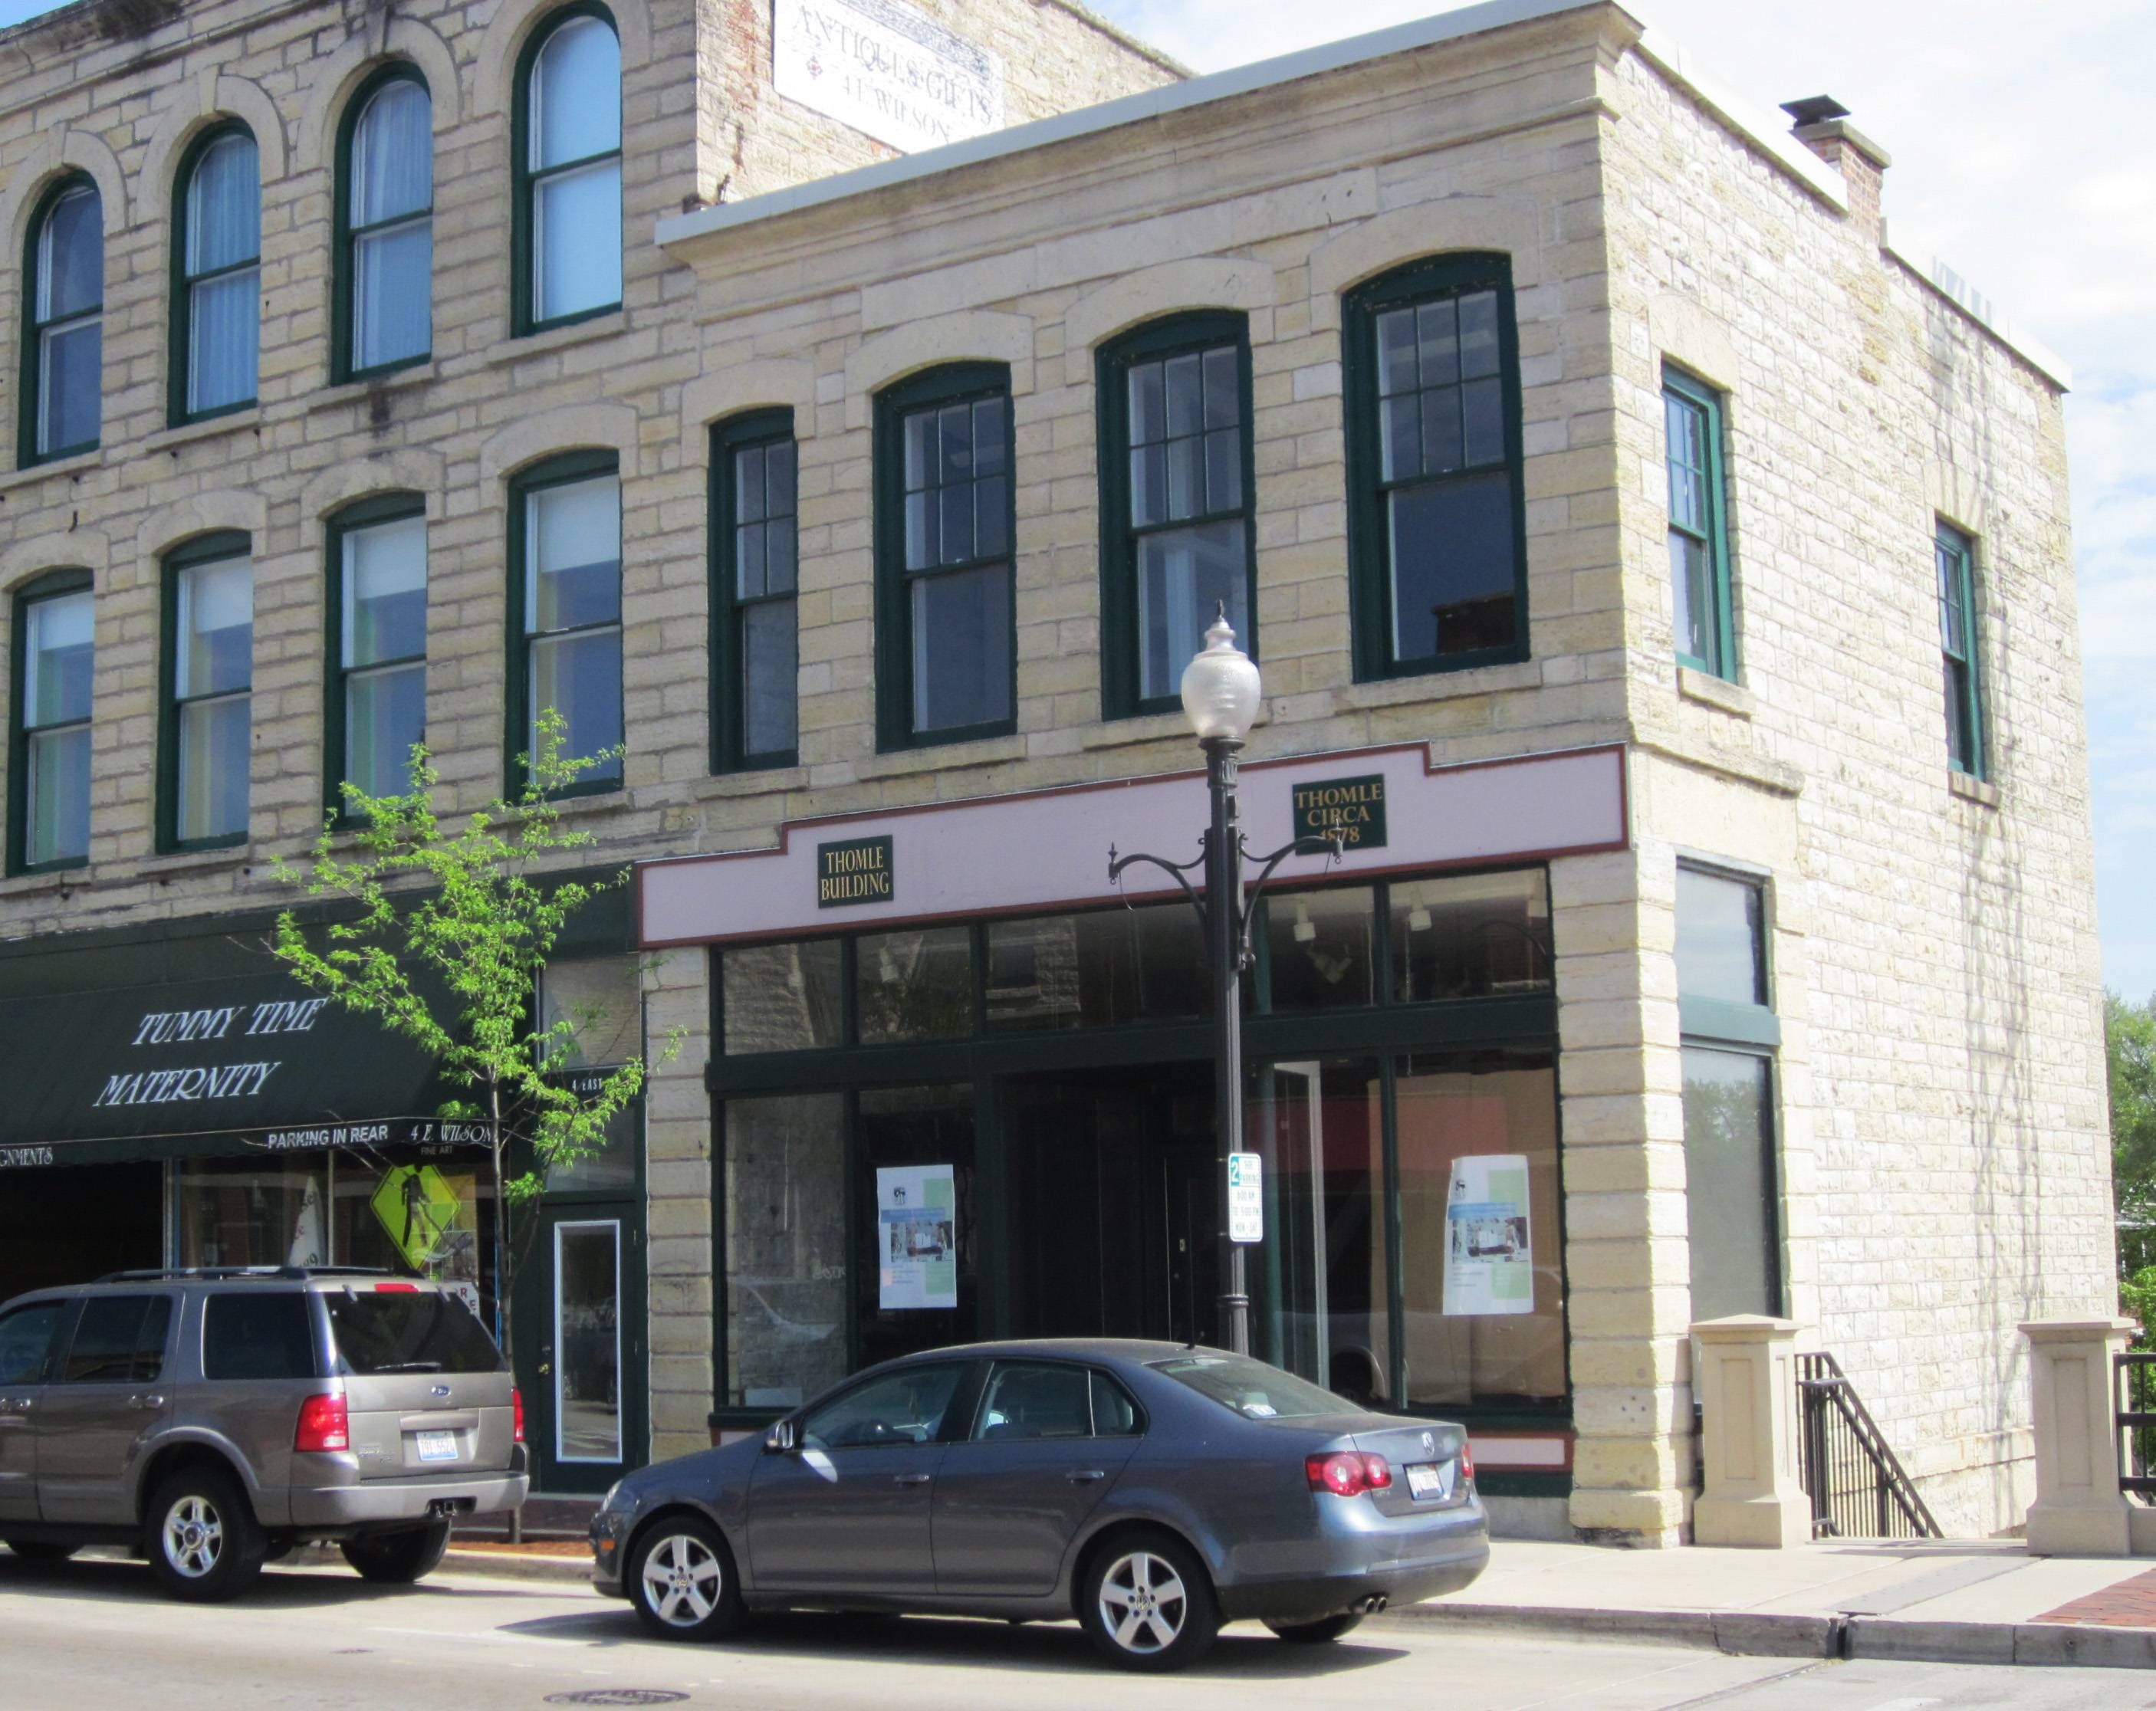 $590K sought from Batavia for Thomle Building project